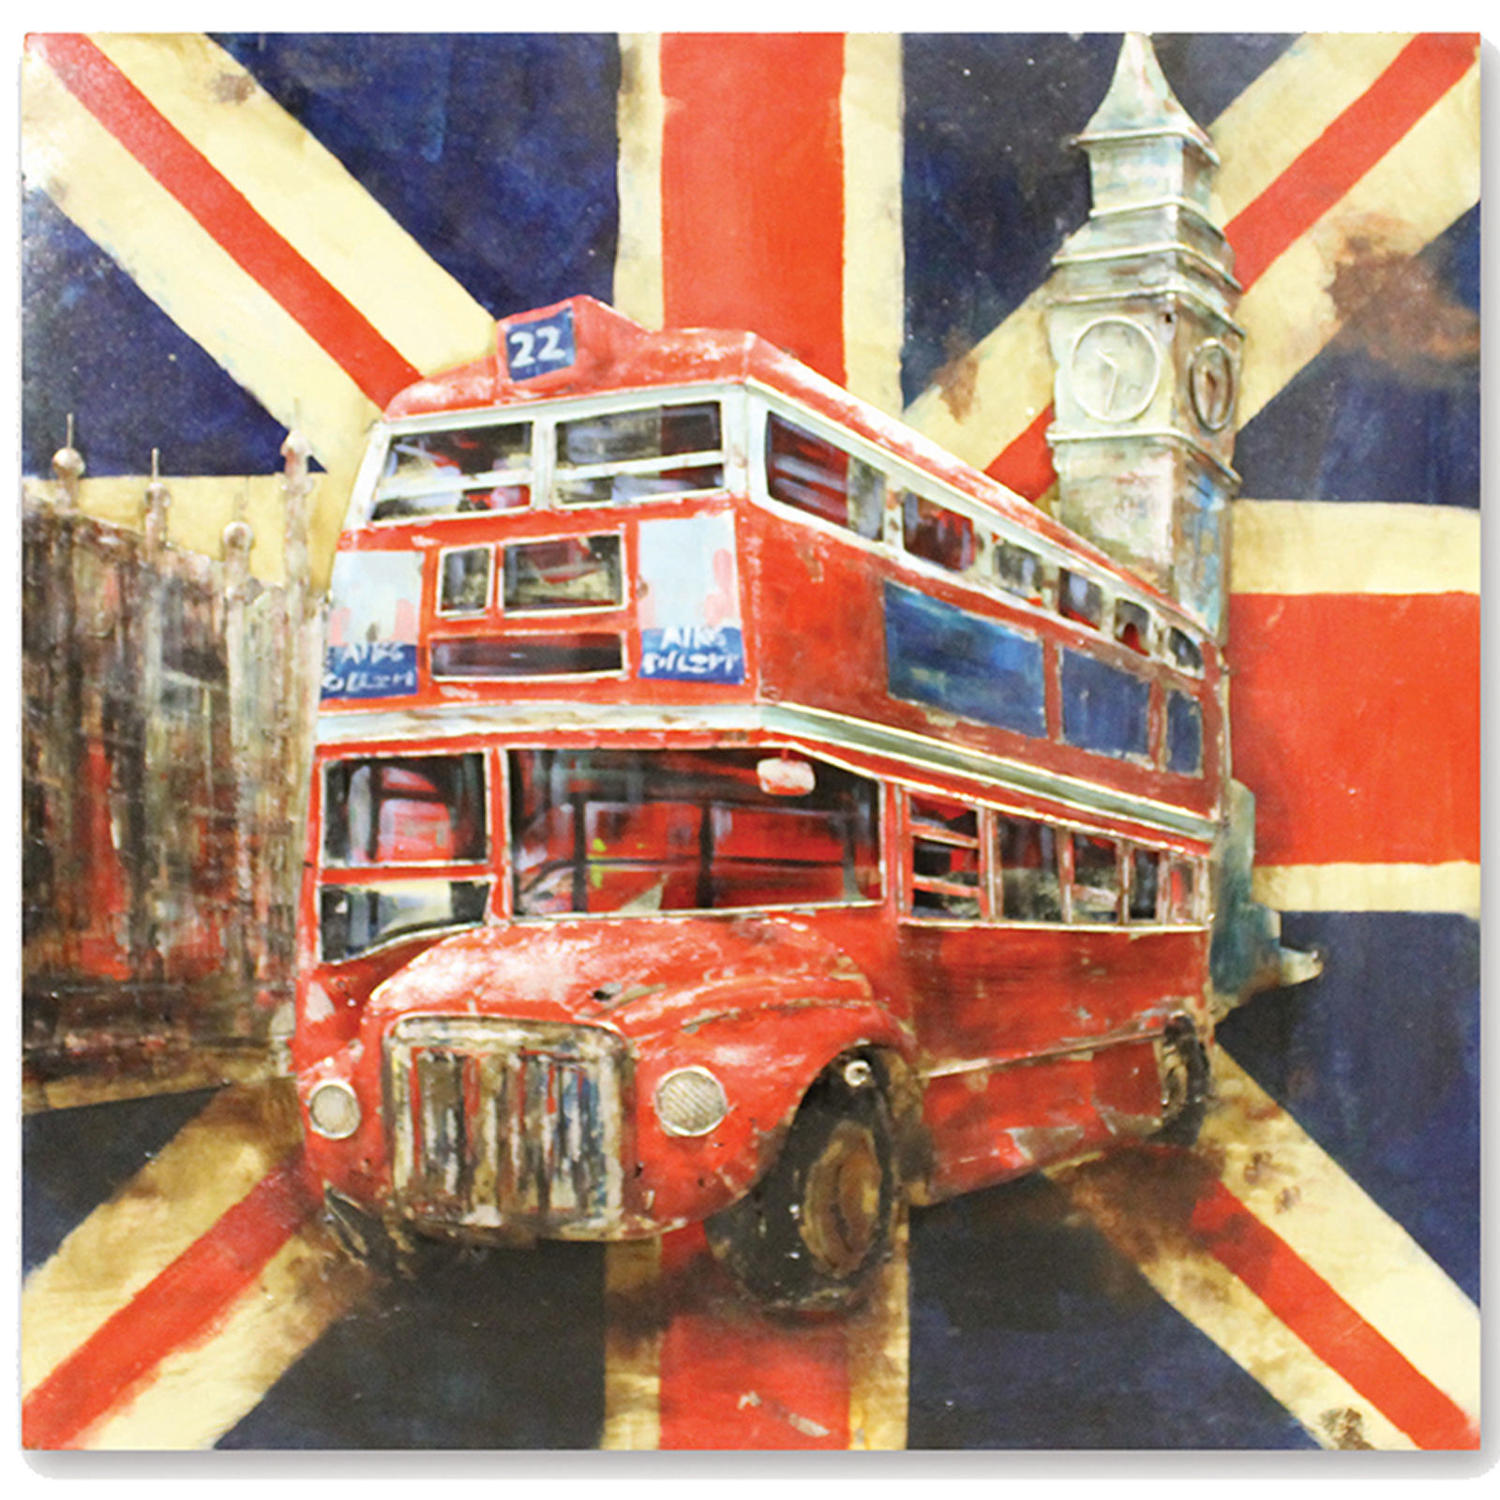 London 3D metal wall art featuring Red bus, Big Ben & Tower of London